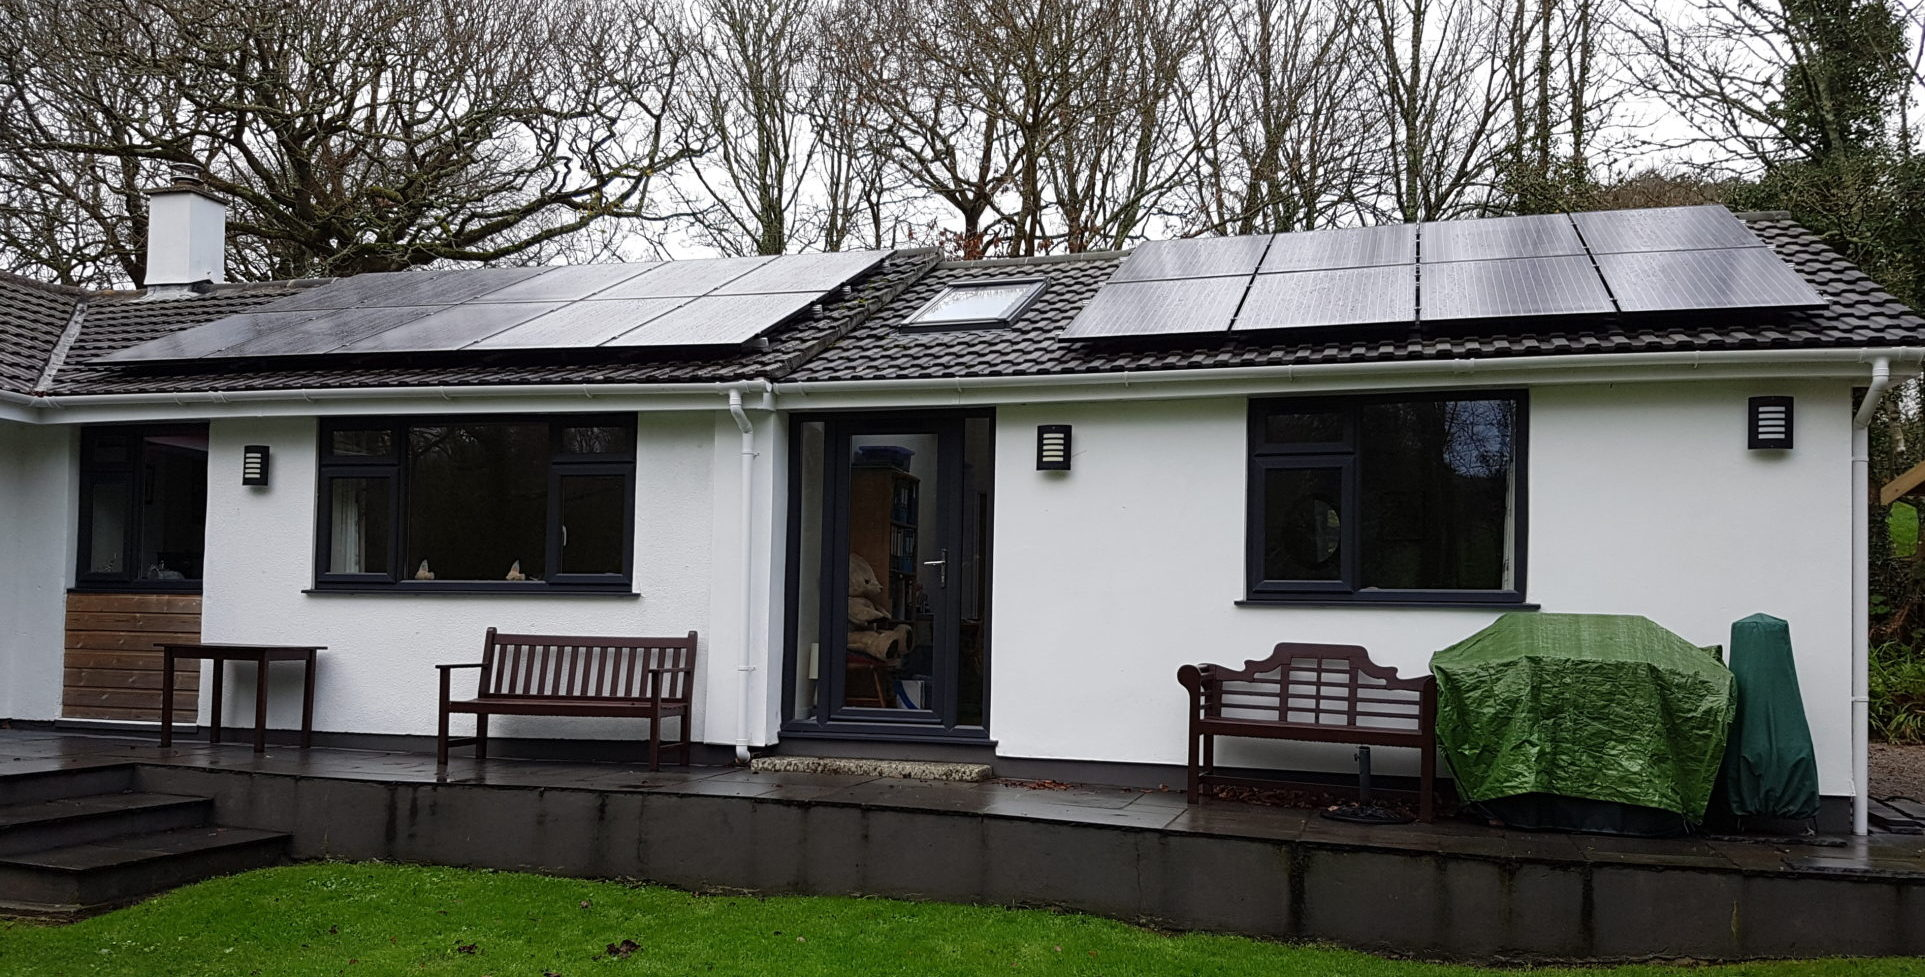 A 5kW solar PV installation near Ruan Minor, Cornwall.